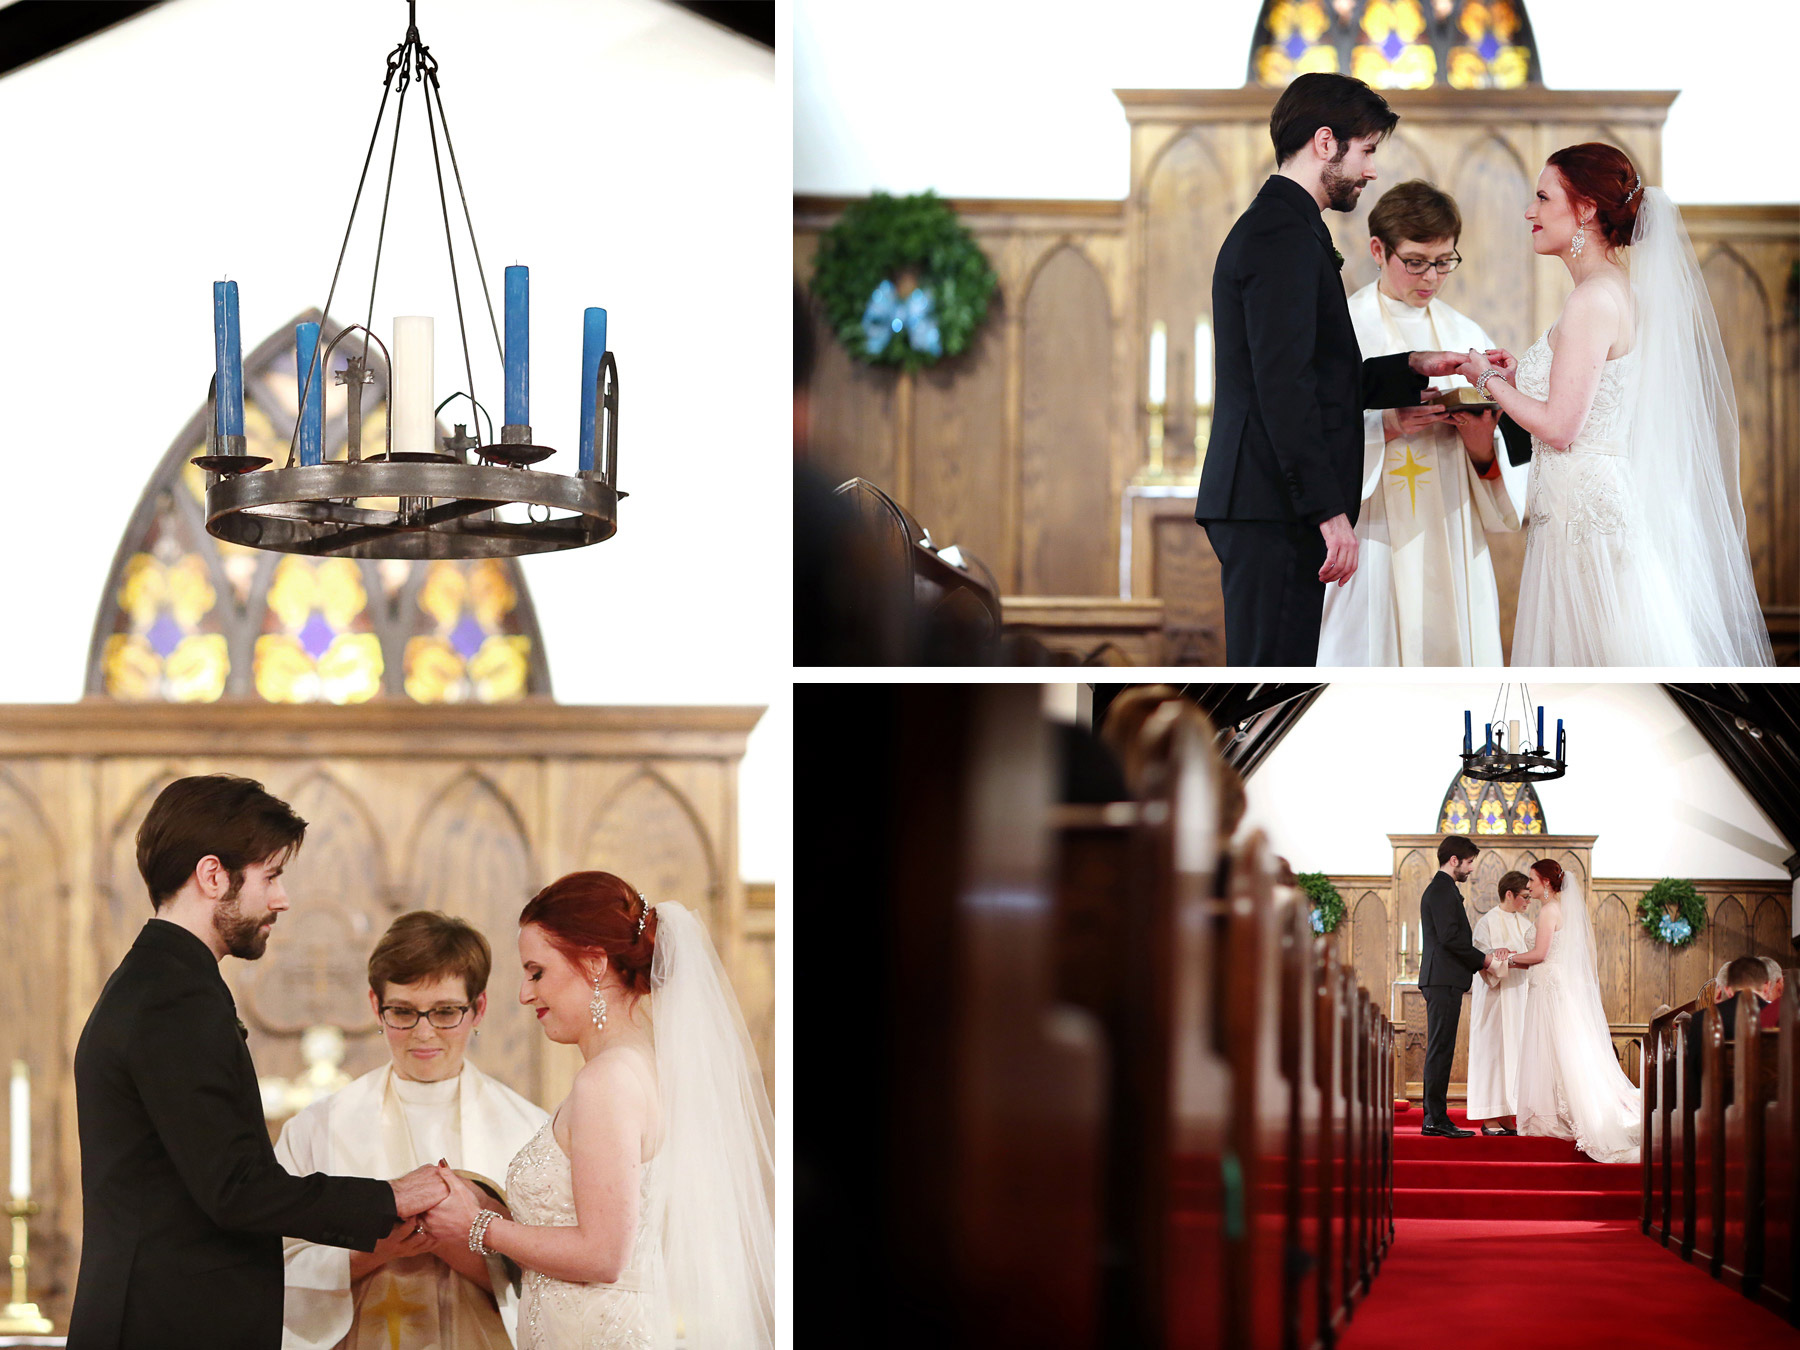 09-Minneapolis-Minnesota-Wedding-Photography-by-Vick-Photography-Trinity-Episcopal-Church-Ceremony-Ashley-and-Aaron.jpg